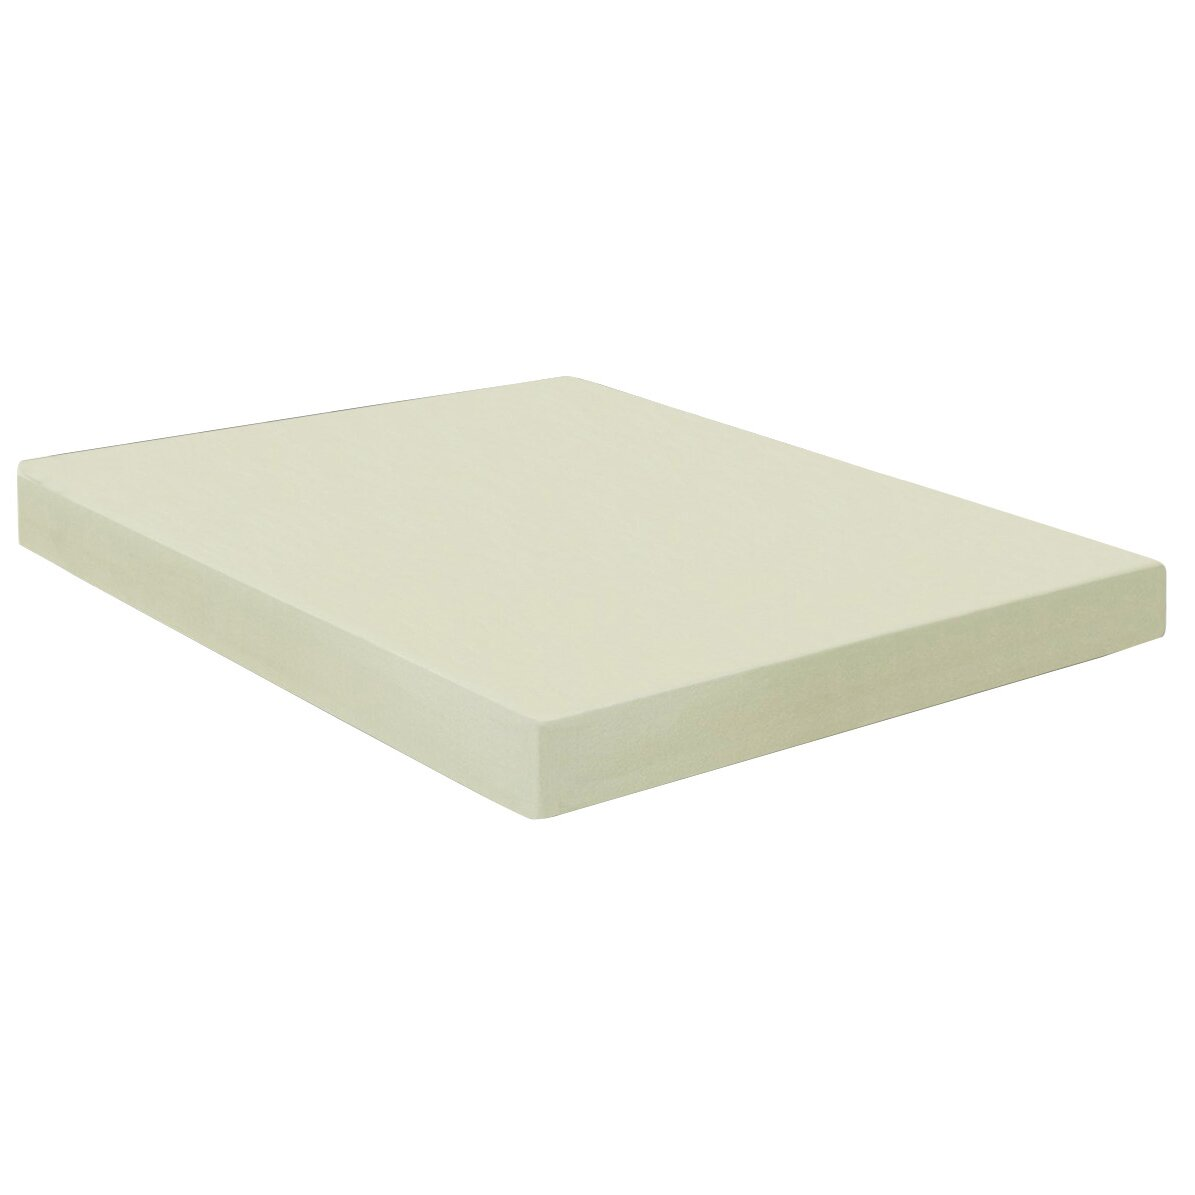 Best Price Quality 6 Memory Foam Mattress Reviews Wayfair